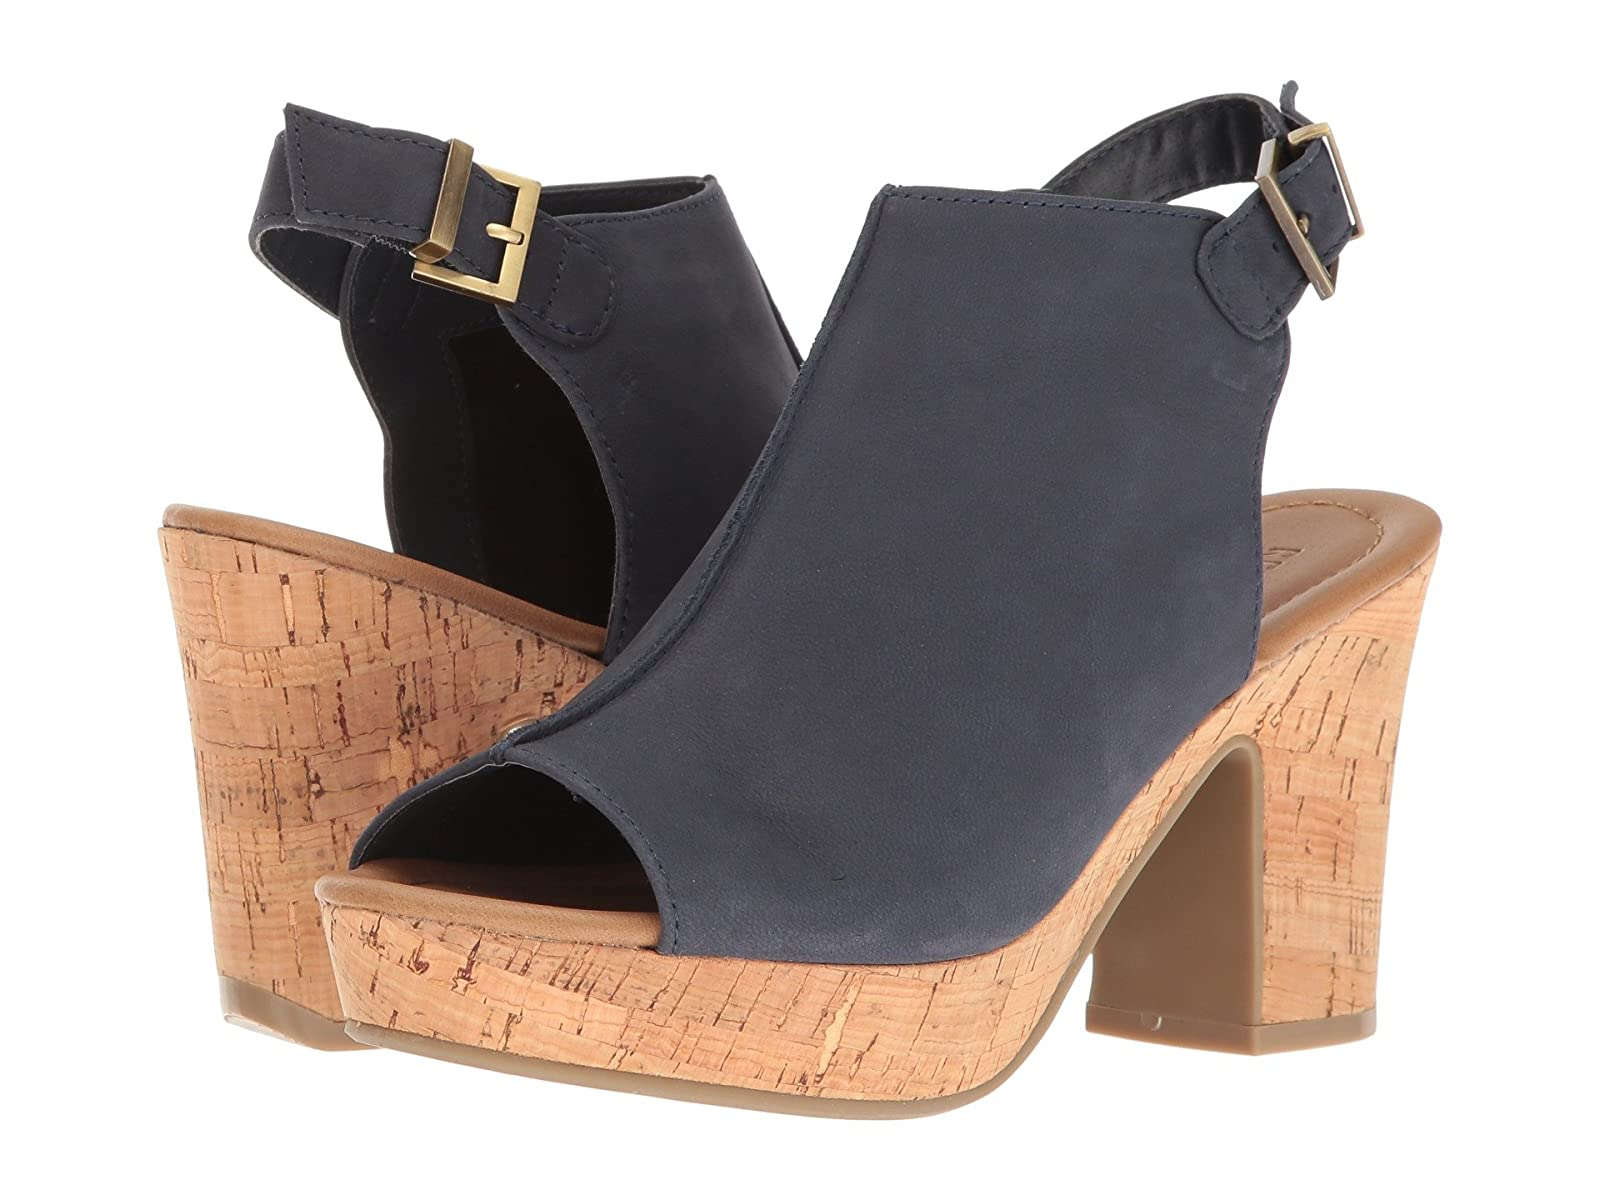 Kenneth Cole Reaction Tole-TallyCheap and distinctive eye-catching shoes